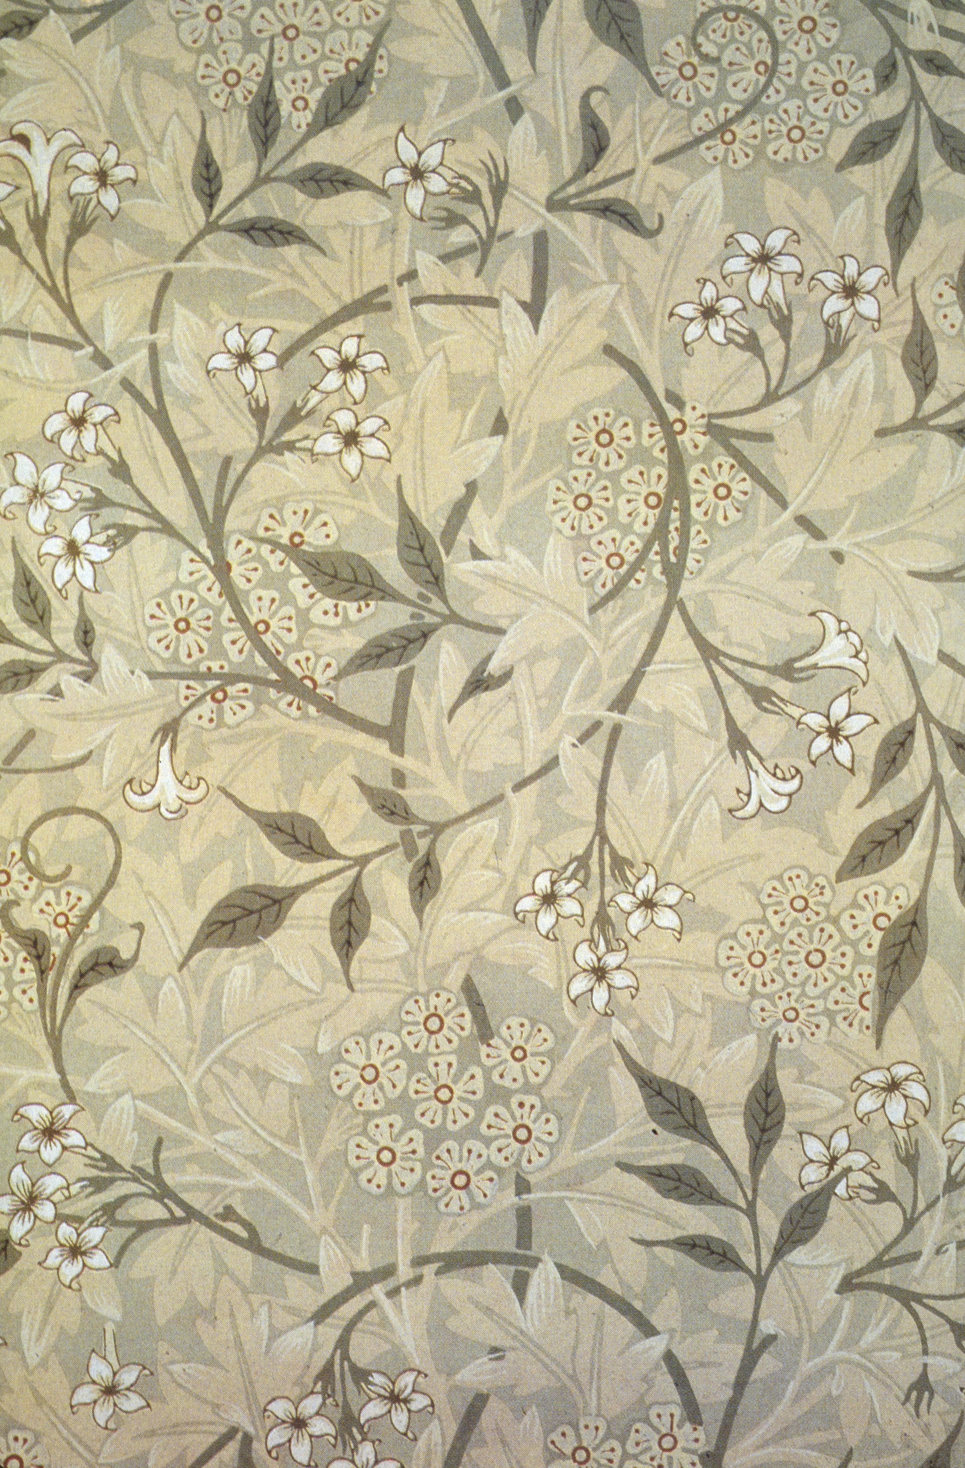 Jasmine William morris, Jasmine and Wallpaper